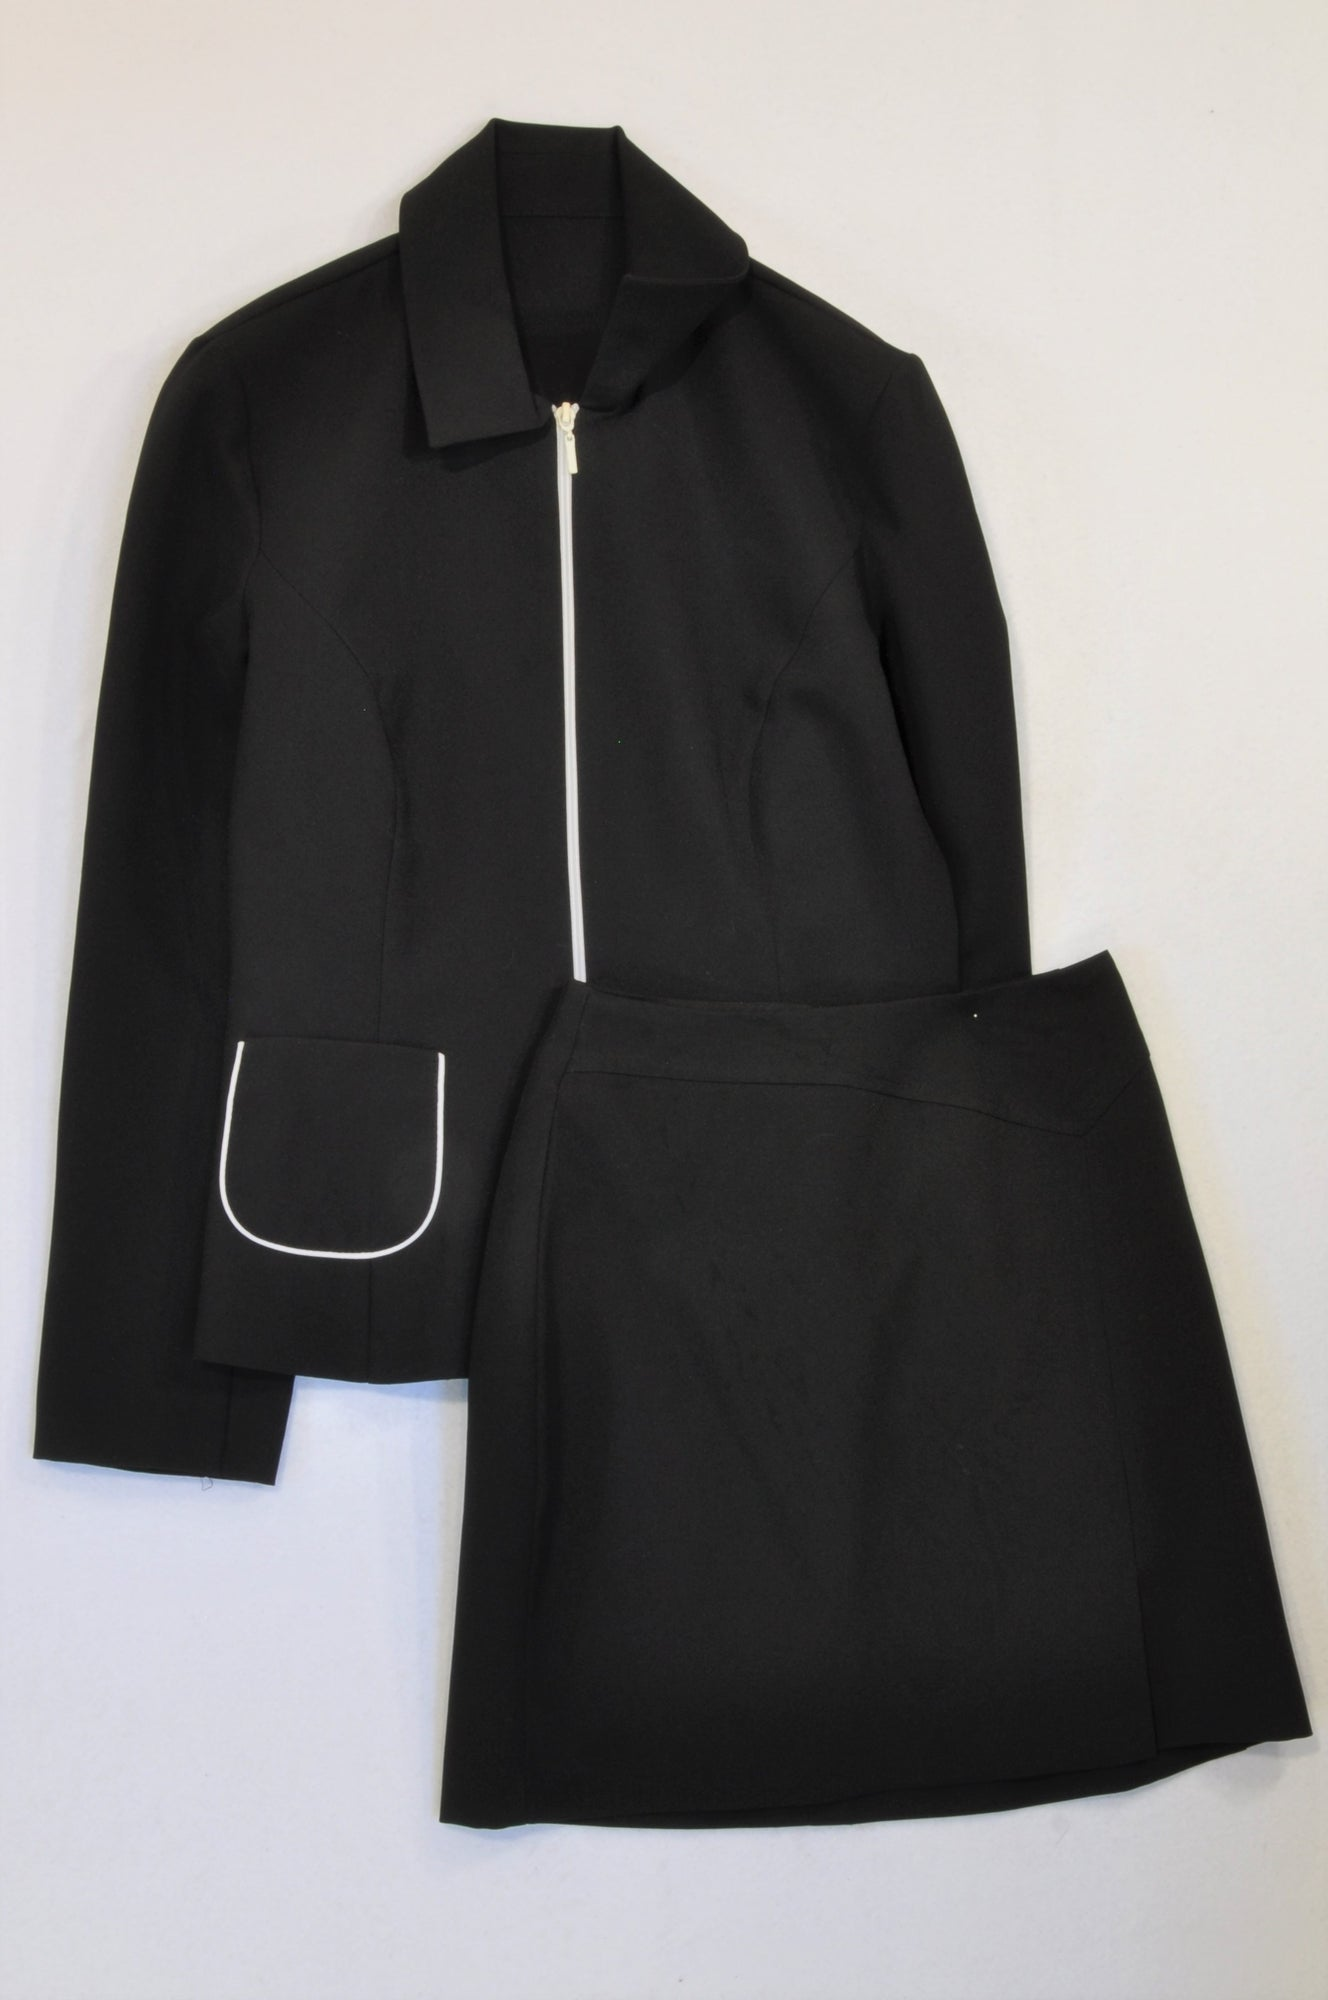 Inwear Black White Trim Office Jacket & Skirt Outfit Women Size 34